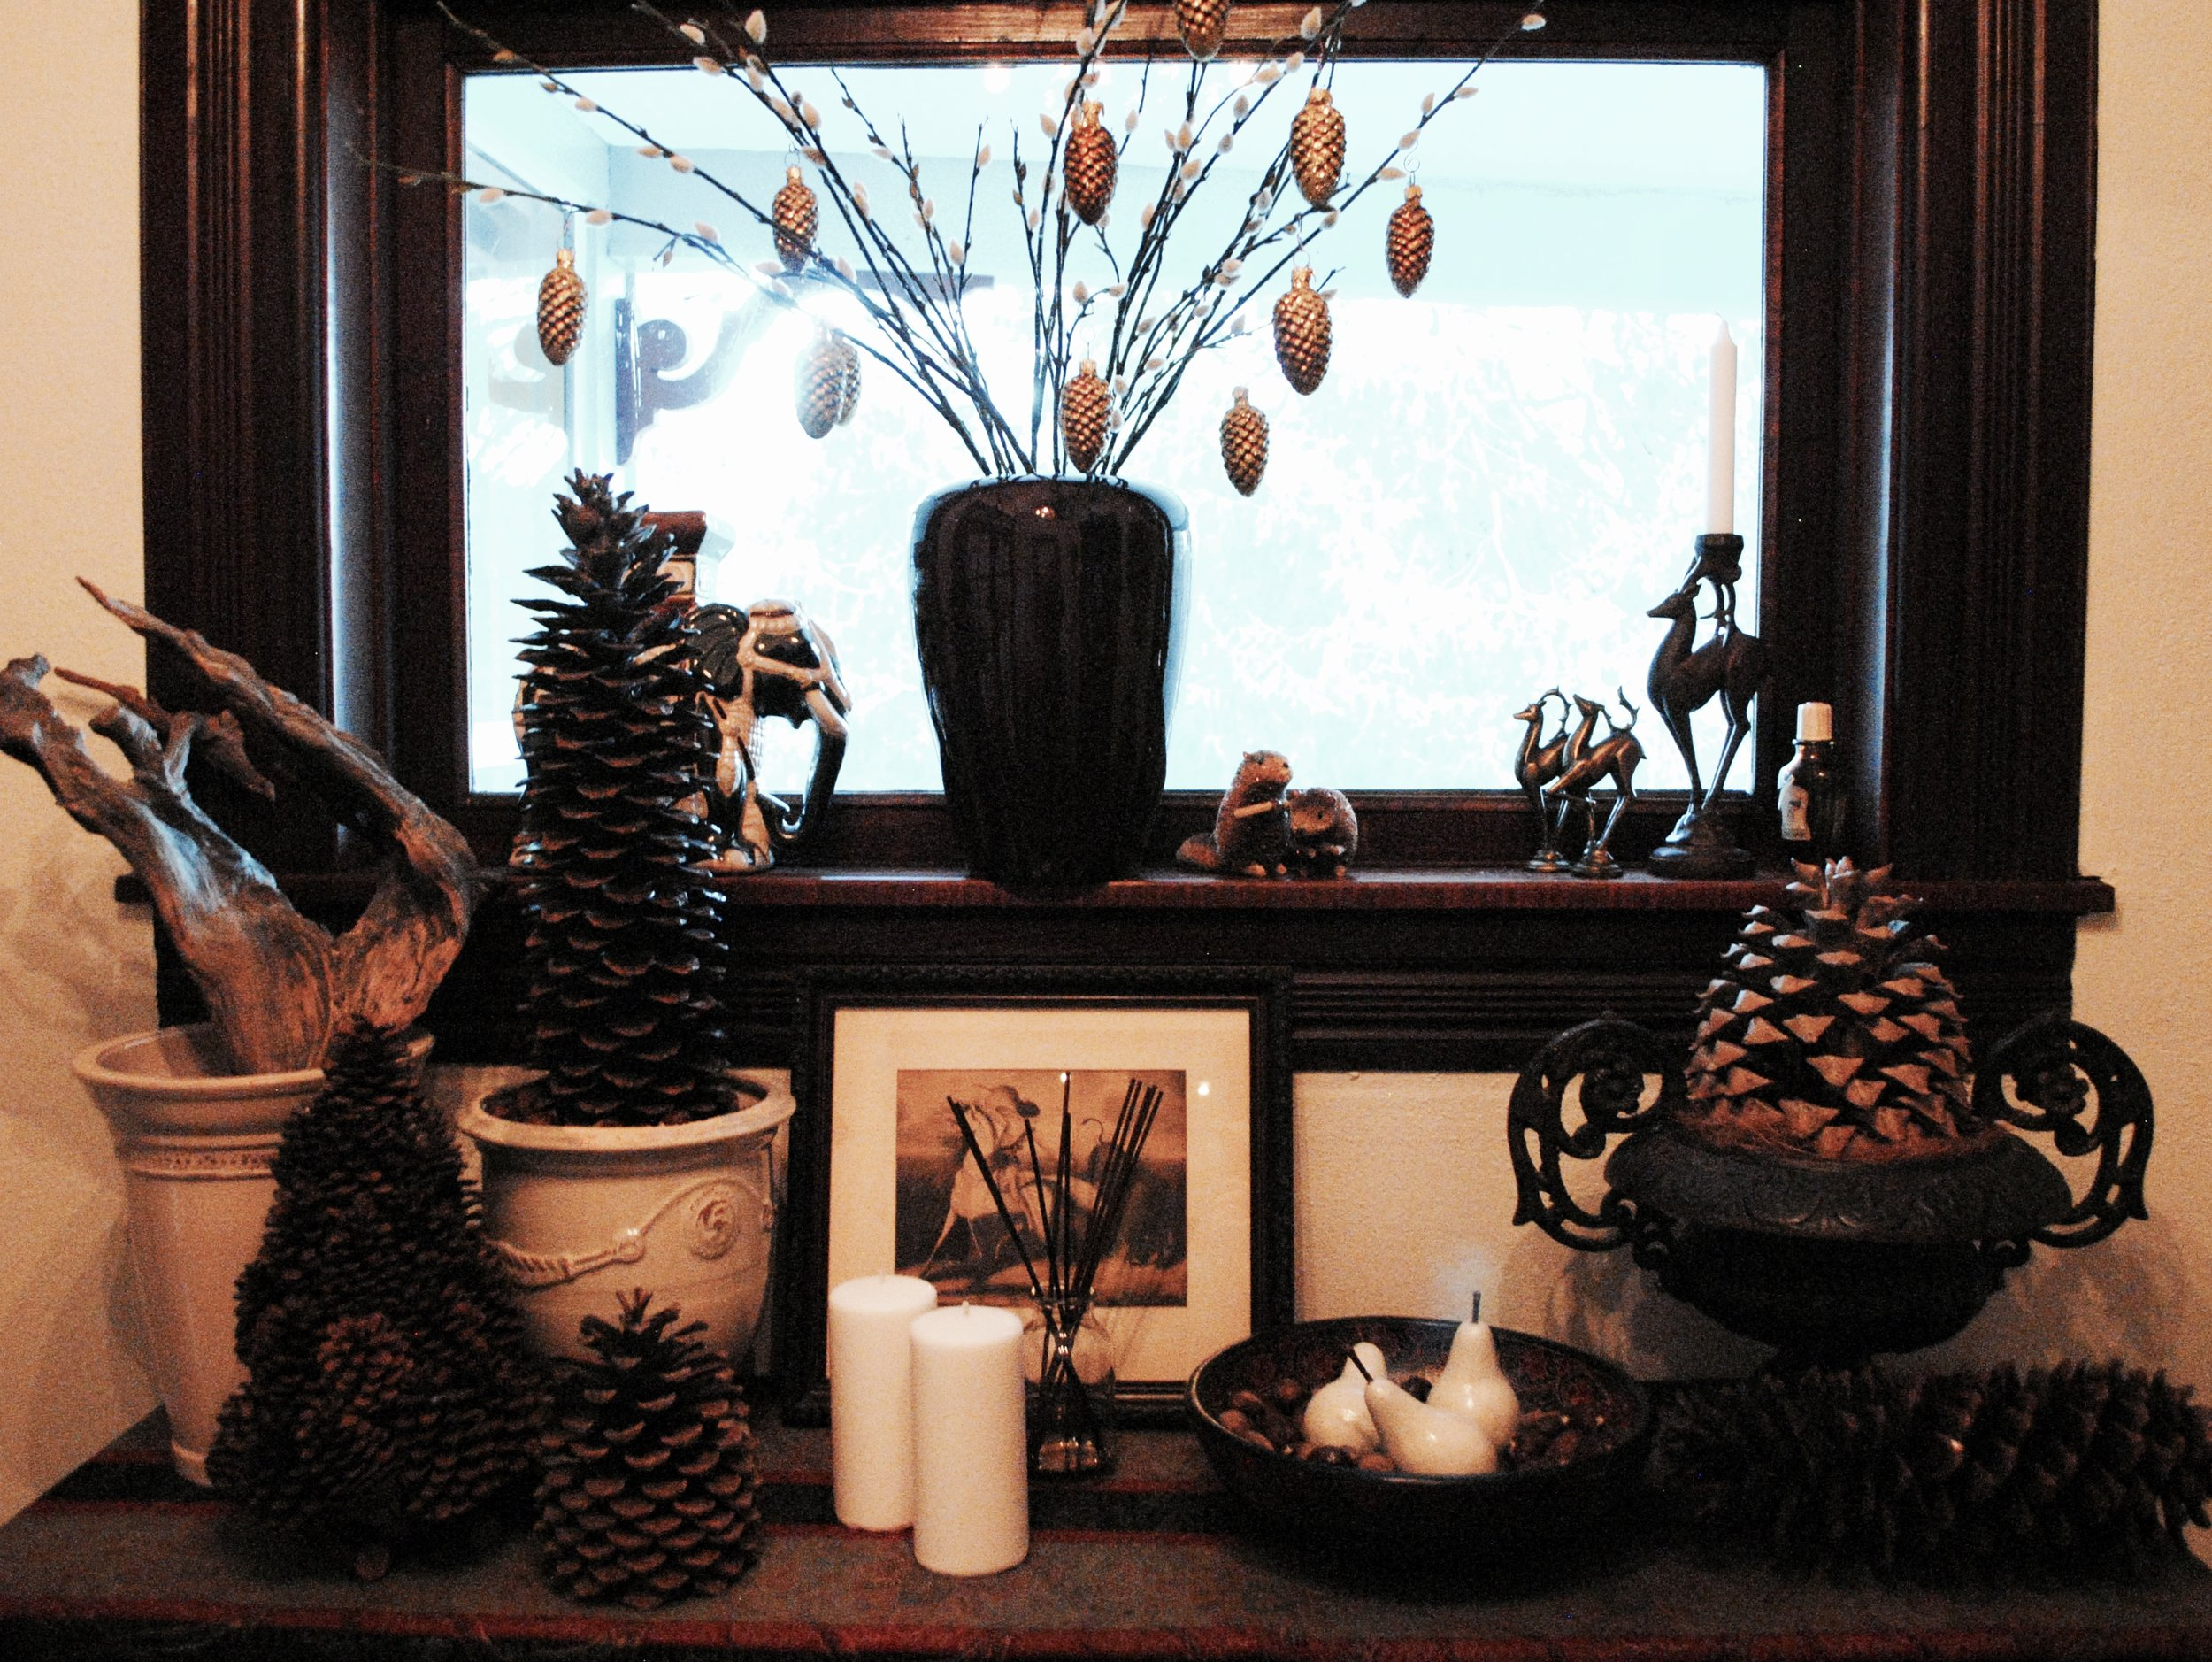 In the vestibule, pine cones, wooden pears,and a bowl of chestnuts on the old Italian ironwood console.